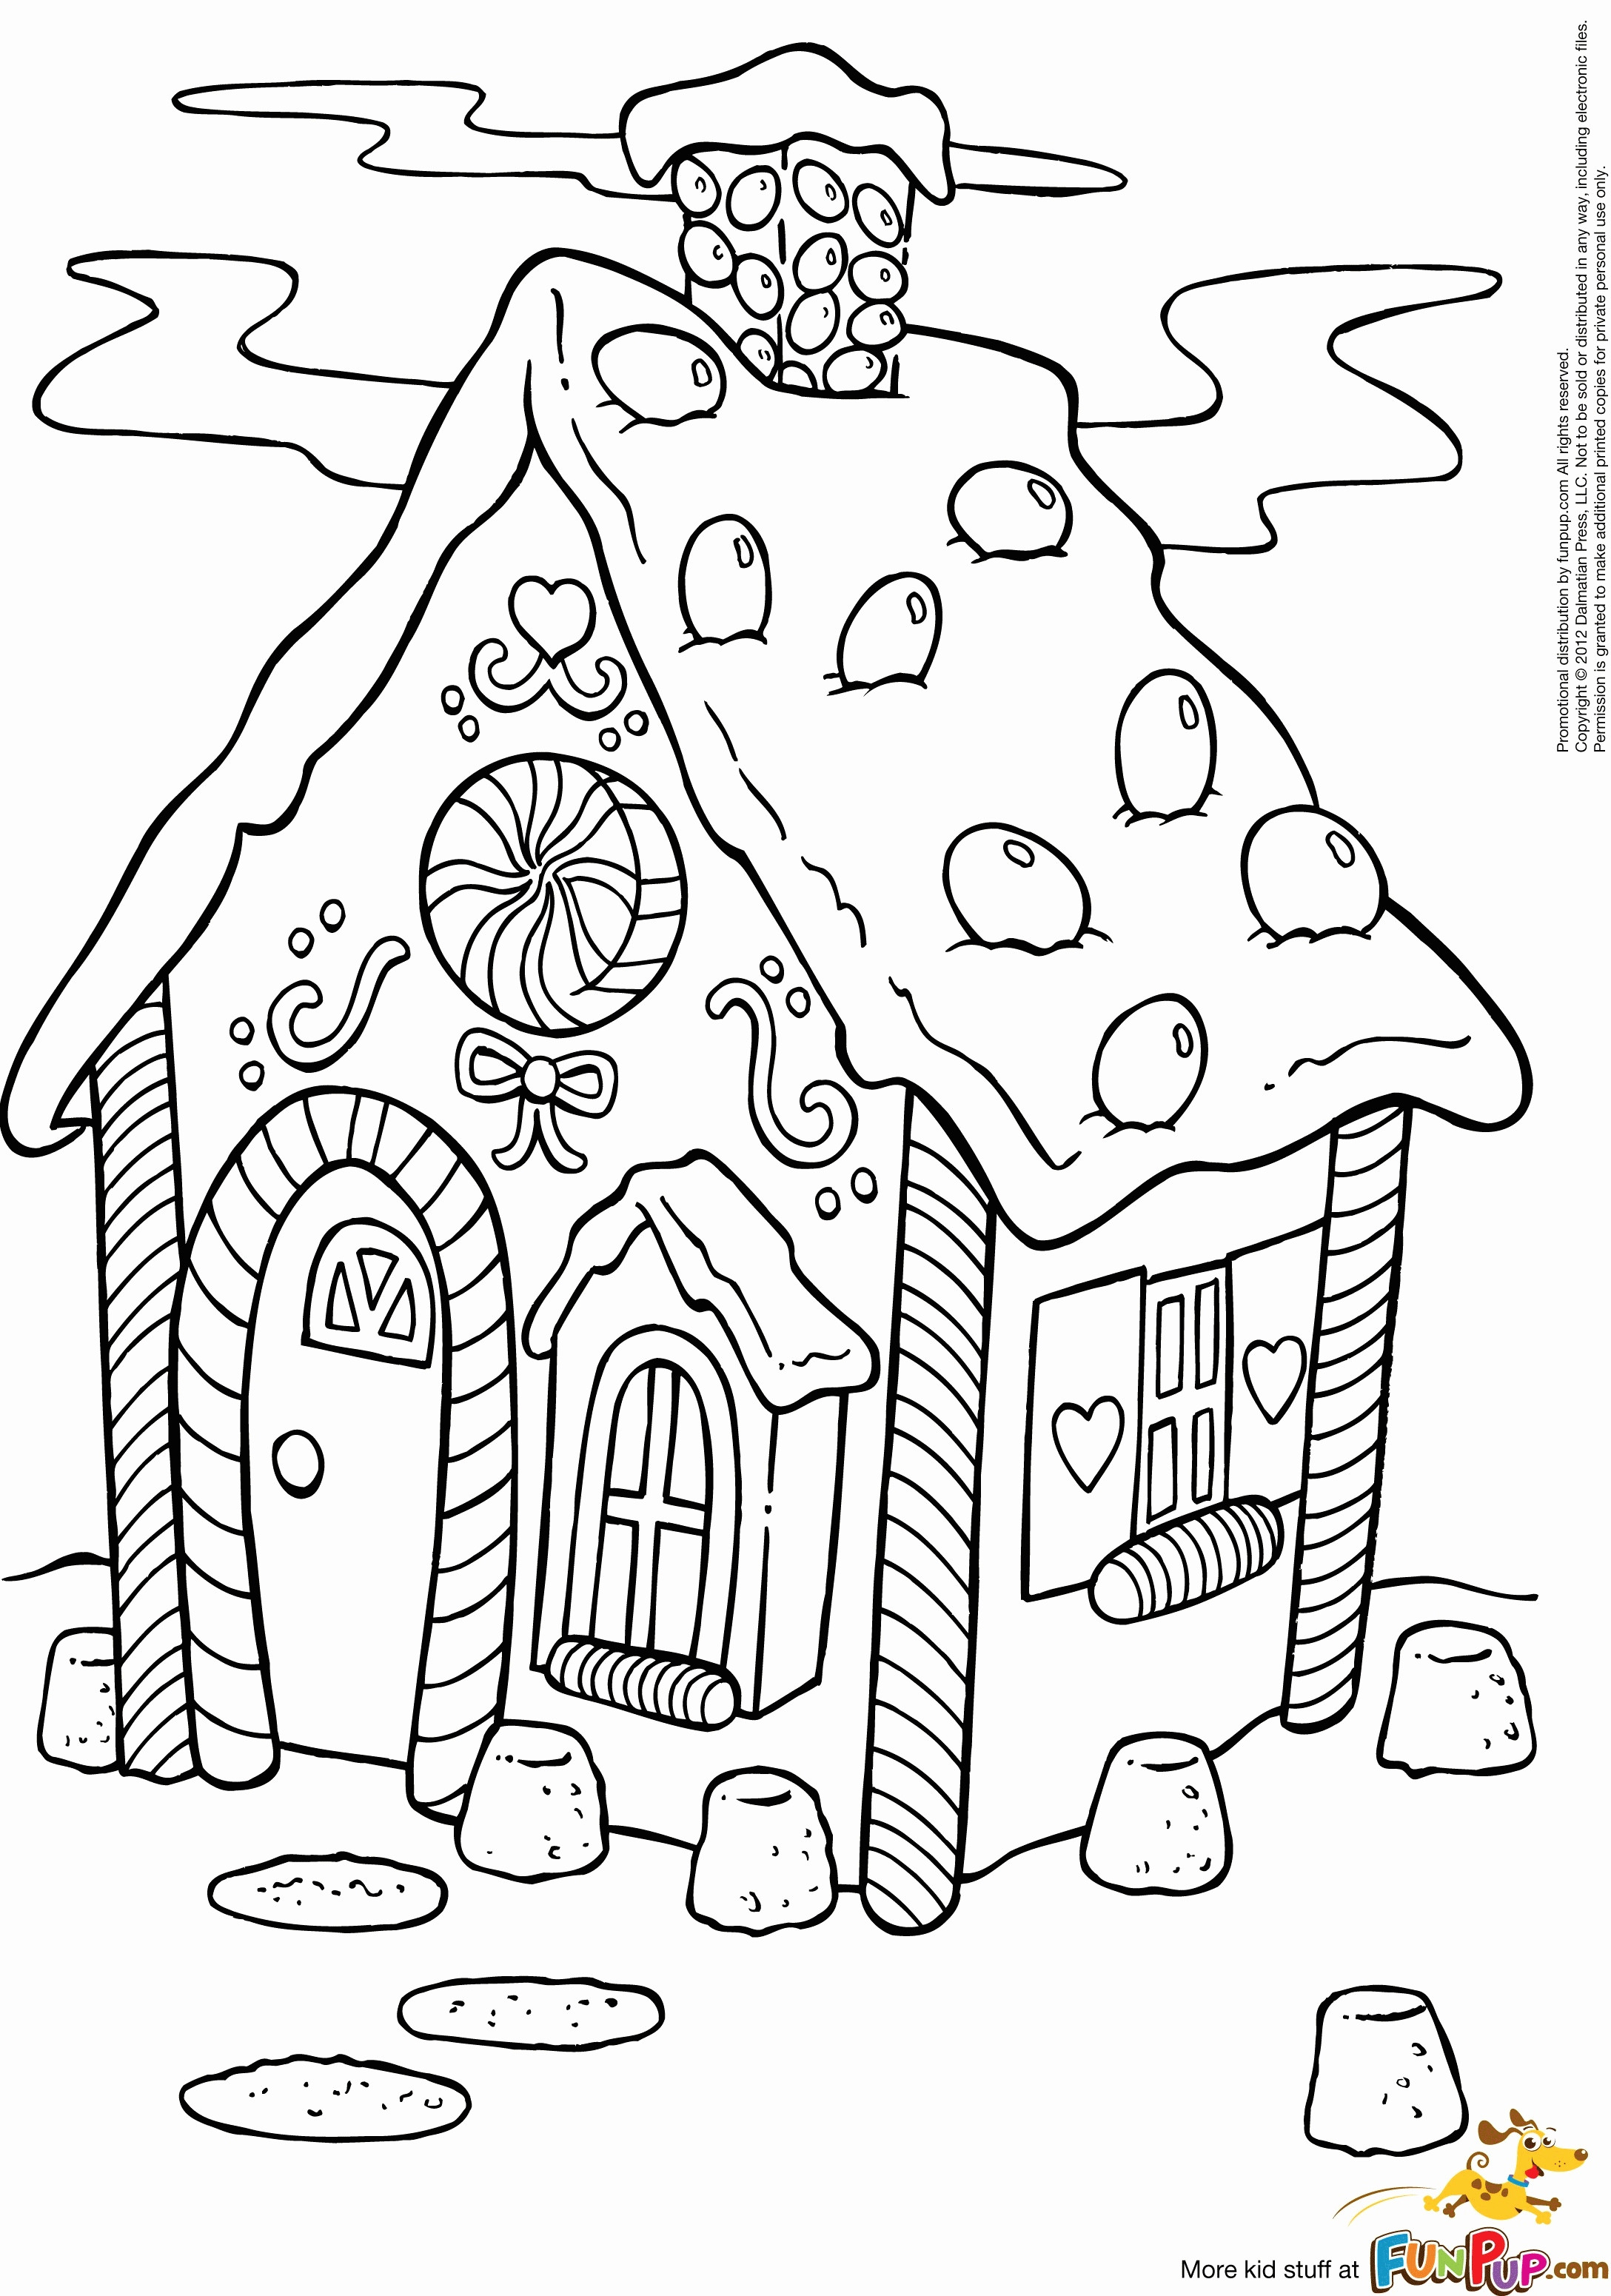 coloring book ~ Kids Coloring Pages Princess Free Online To Print ... | 3101x2176